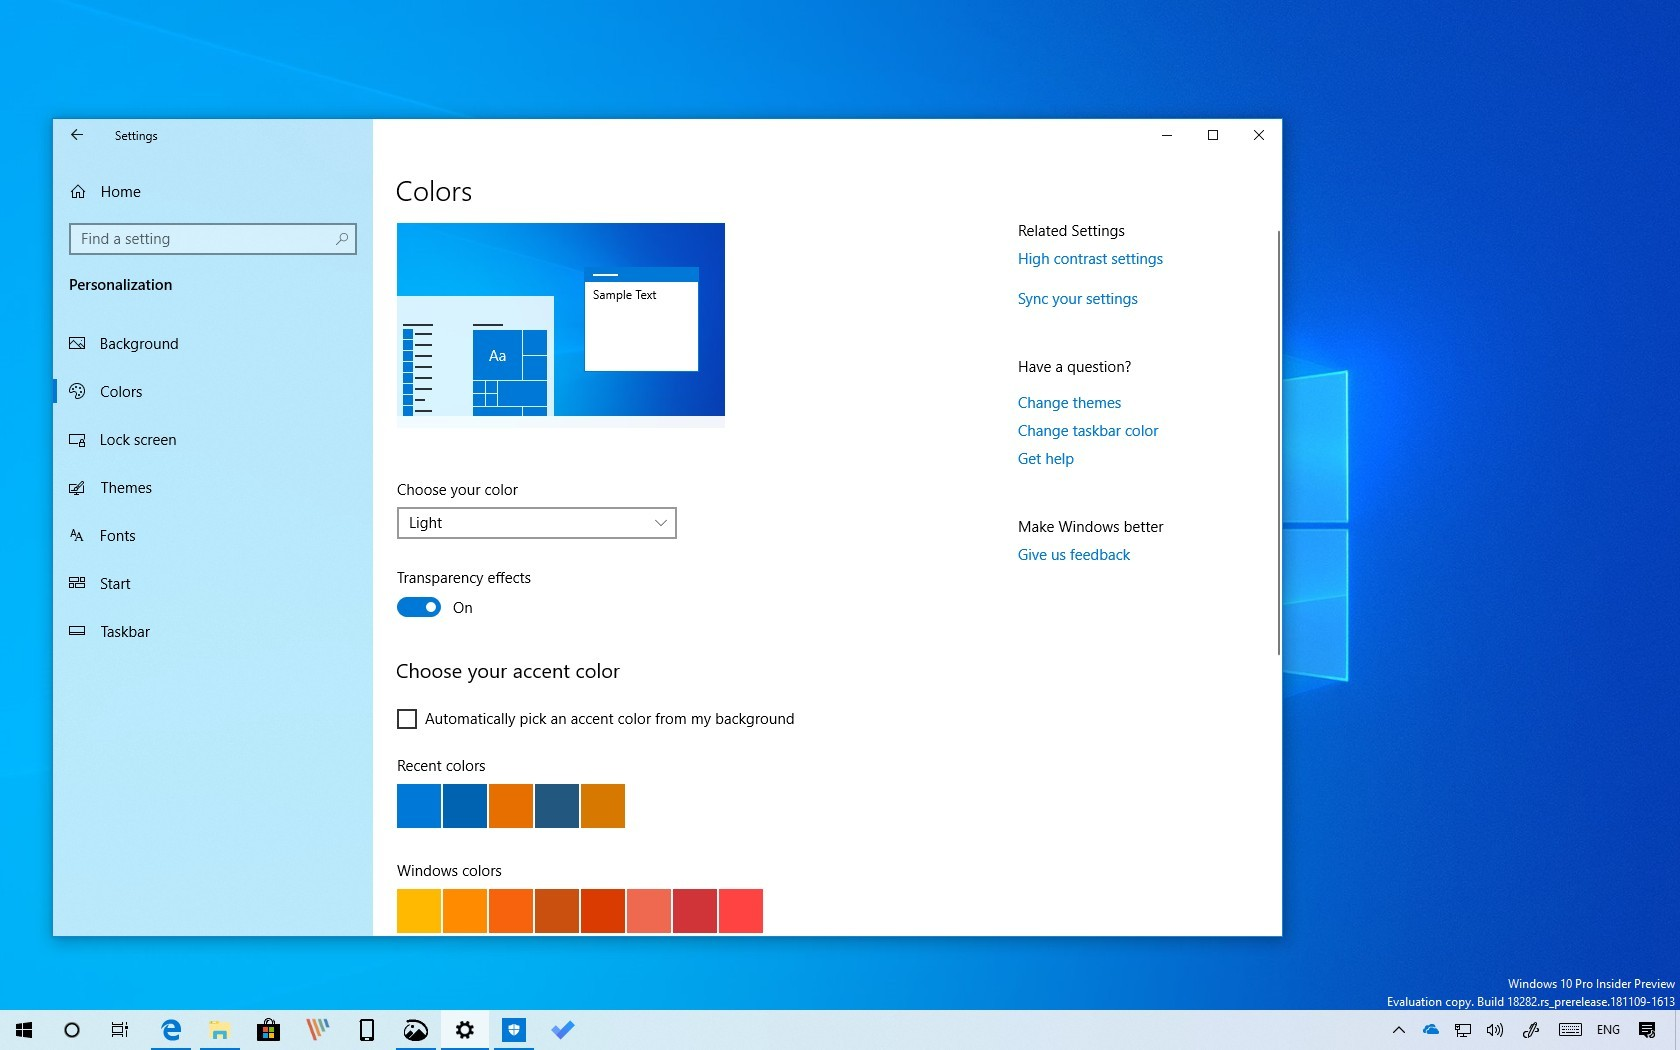 How To Enable New Light Mode On Windows 10 Pureinfotech